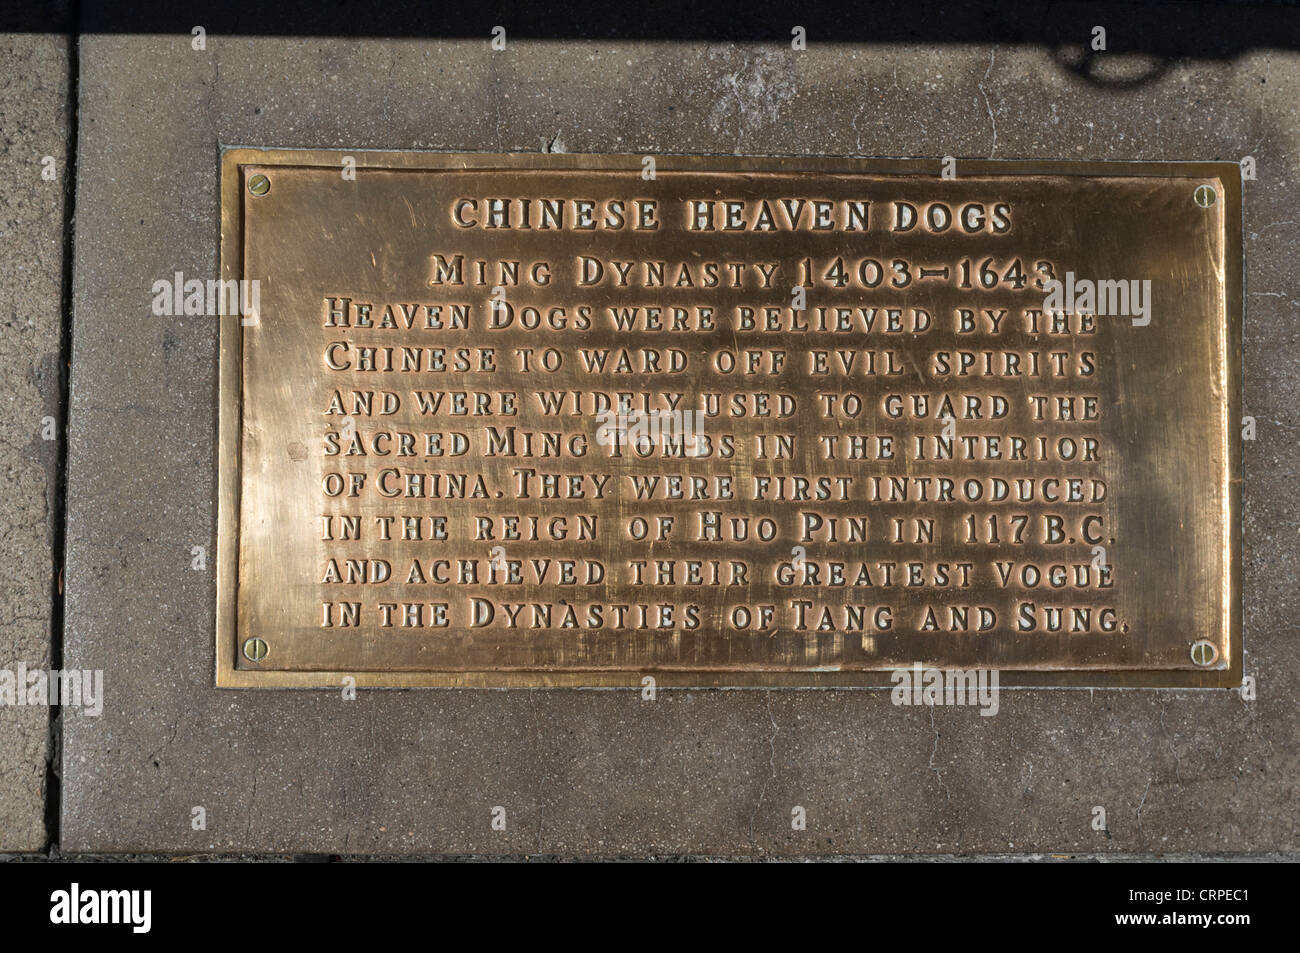 Chinese heaven dogs plaque outside grauman's chinese theater - Stock Image